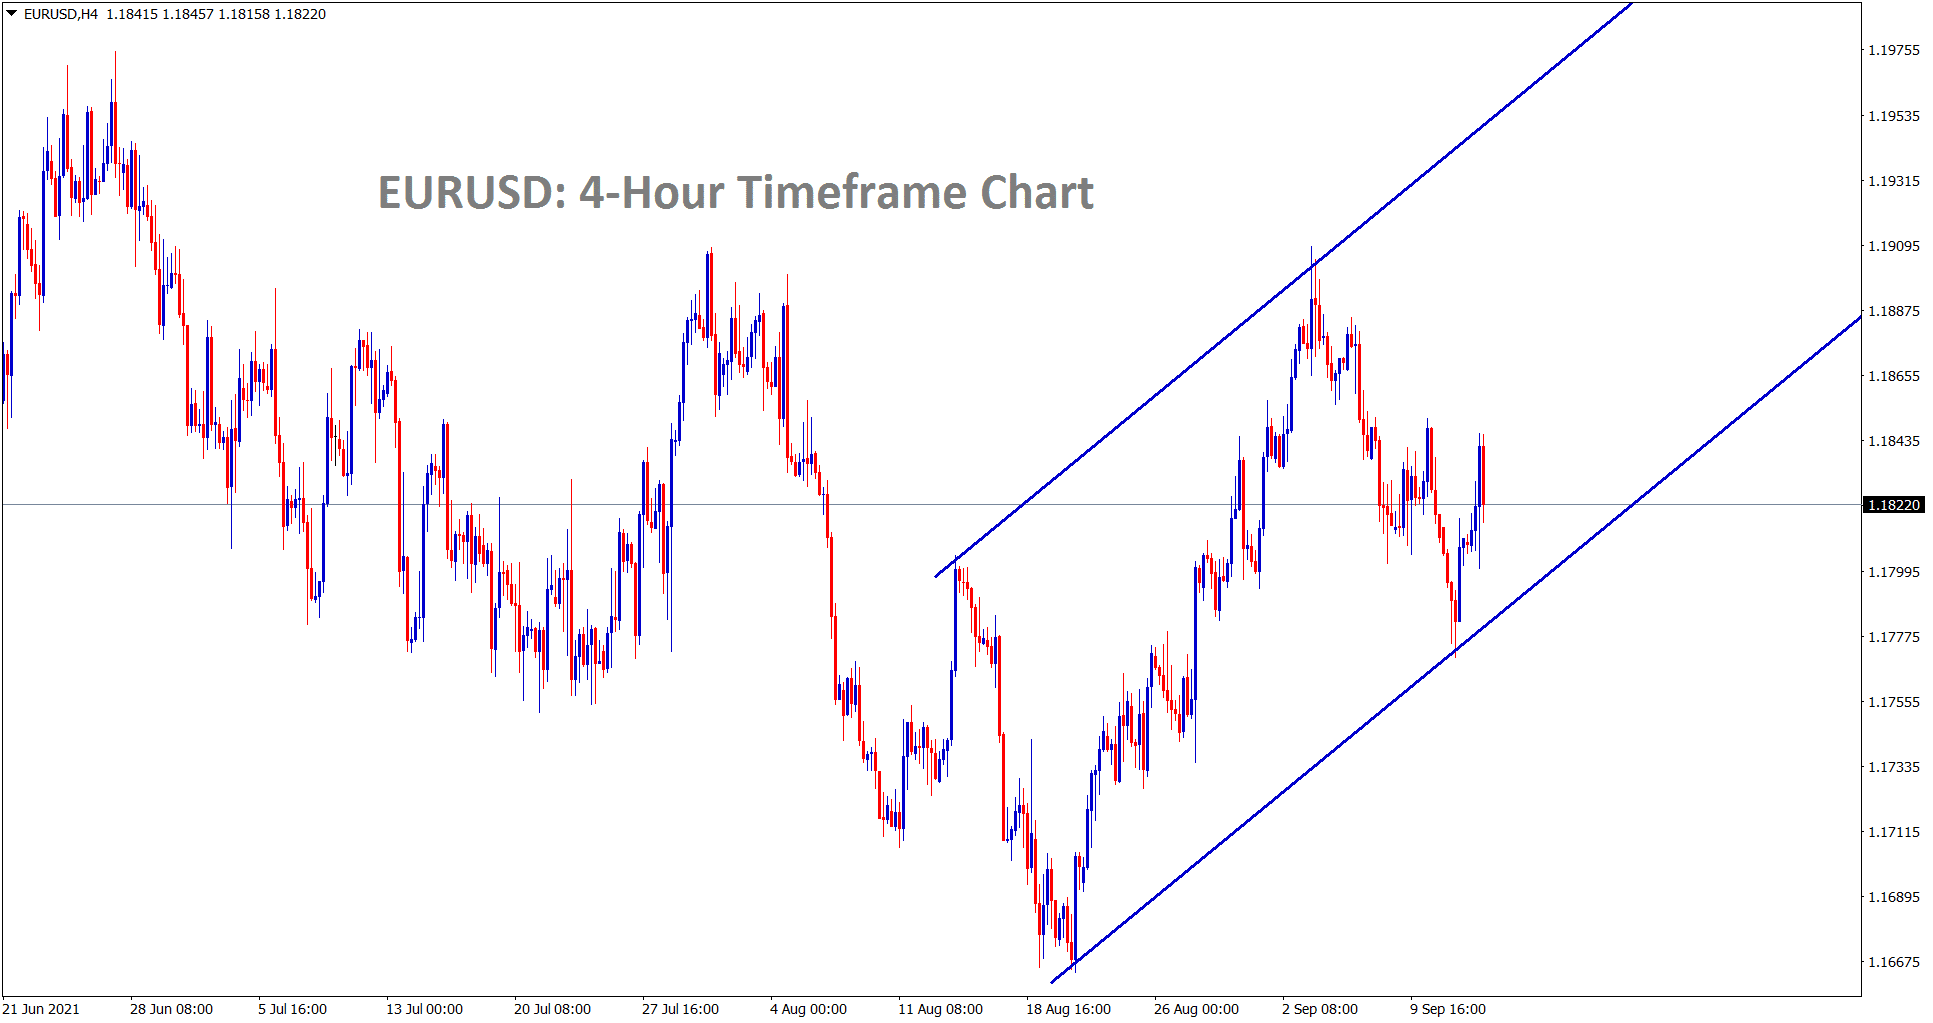 EURUSD is moving in an Ascending channel range